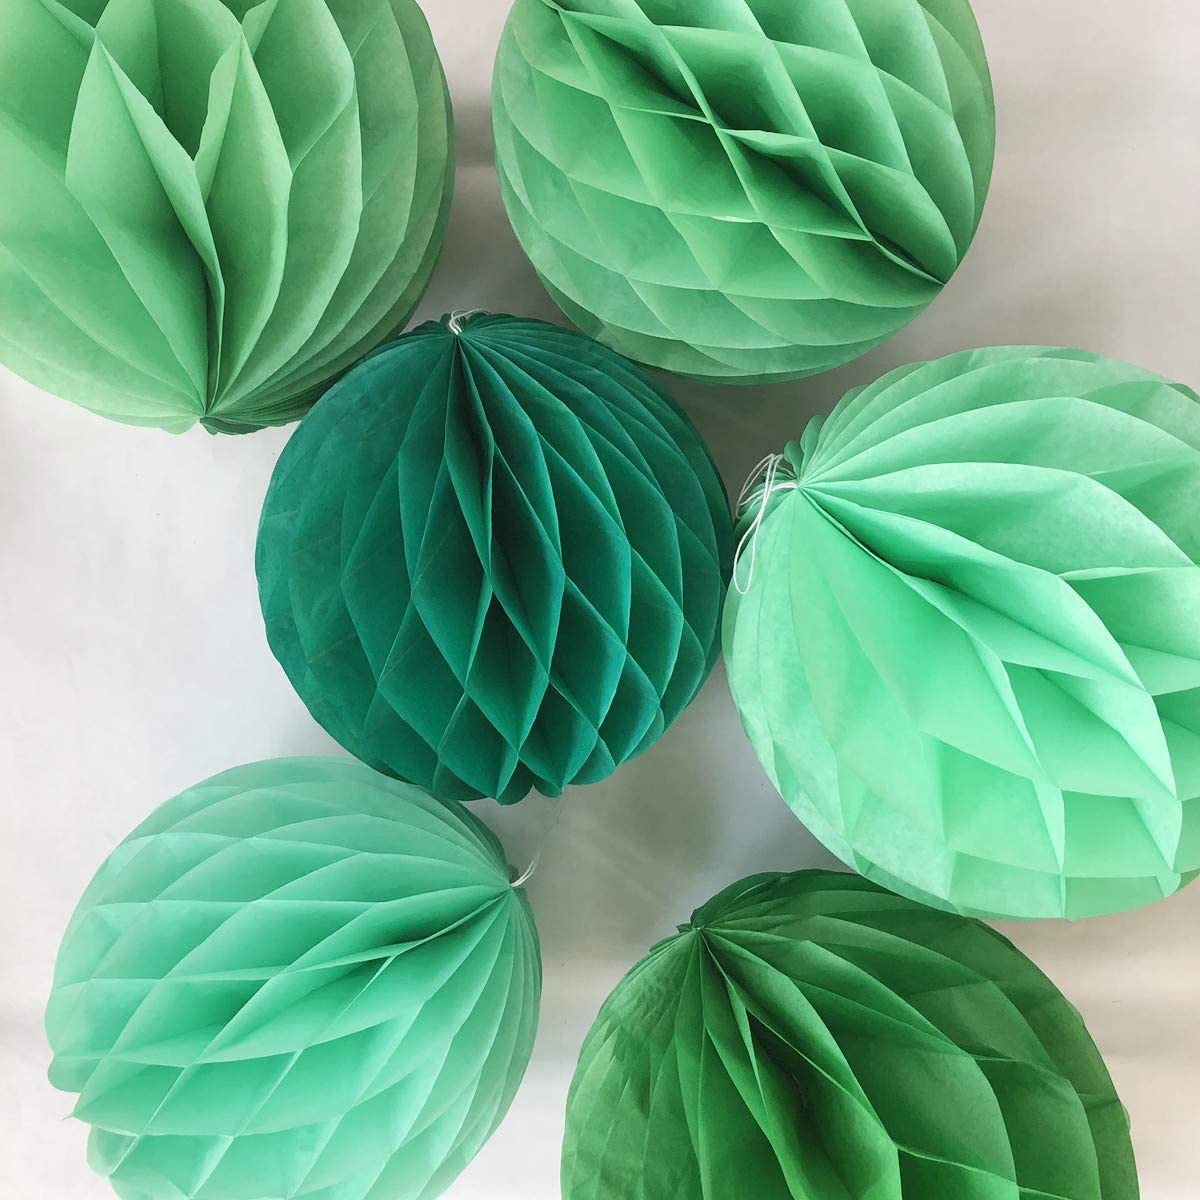 6pcs 10 inch 12 inch Paper Honeycomb Ball Flower Balls Hanging Assorted Paper Balls for Party Wedding Birthday Events Decor (Green Pack)